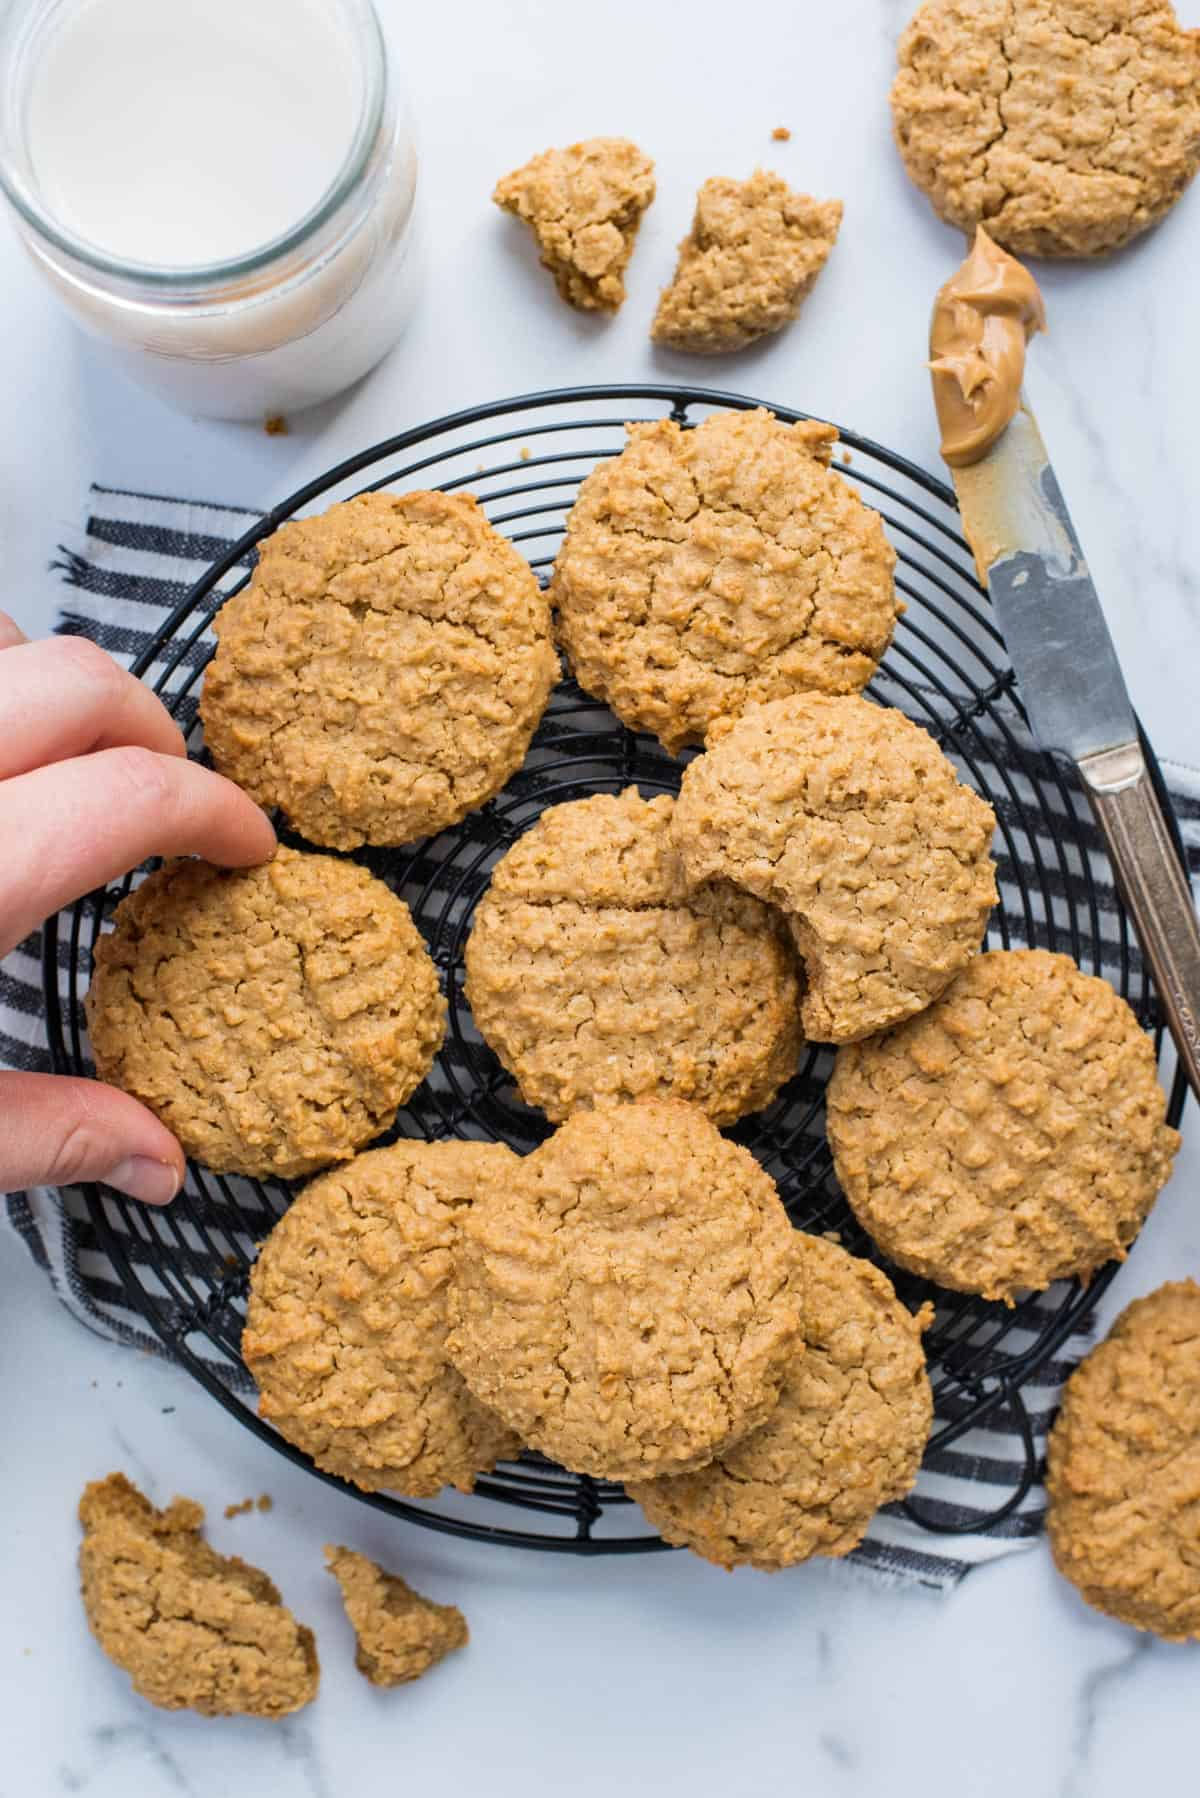 healthy peanut butter cookies on a black wire cooling rack on white background